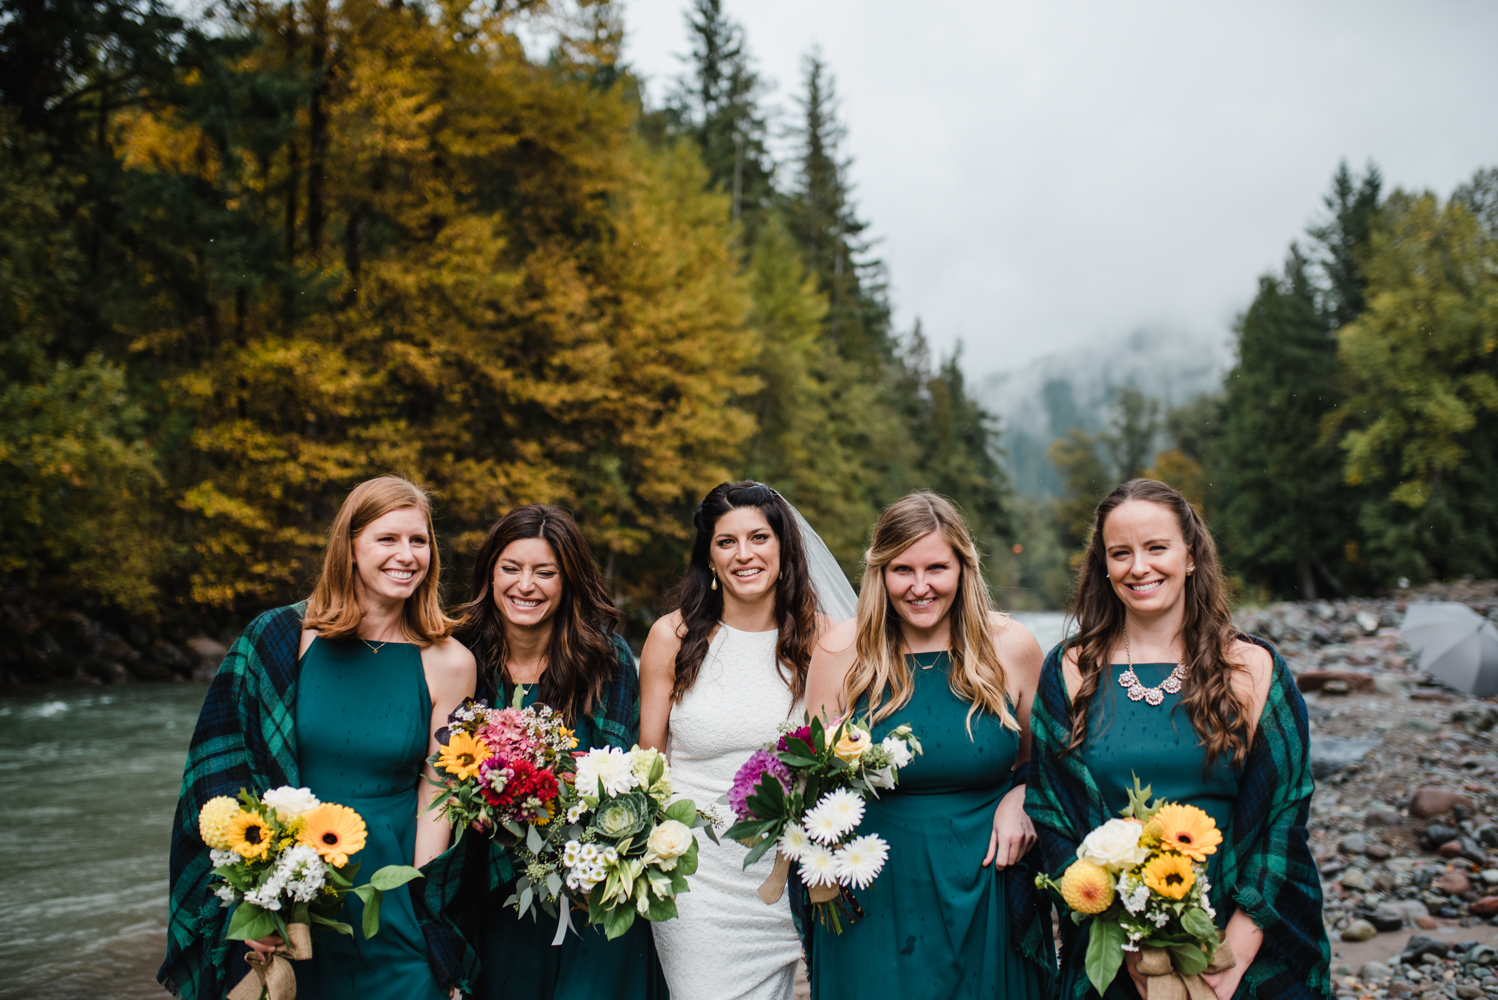 Squamish Wedding Photographer43.jpg